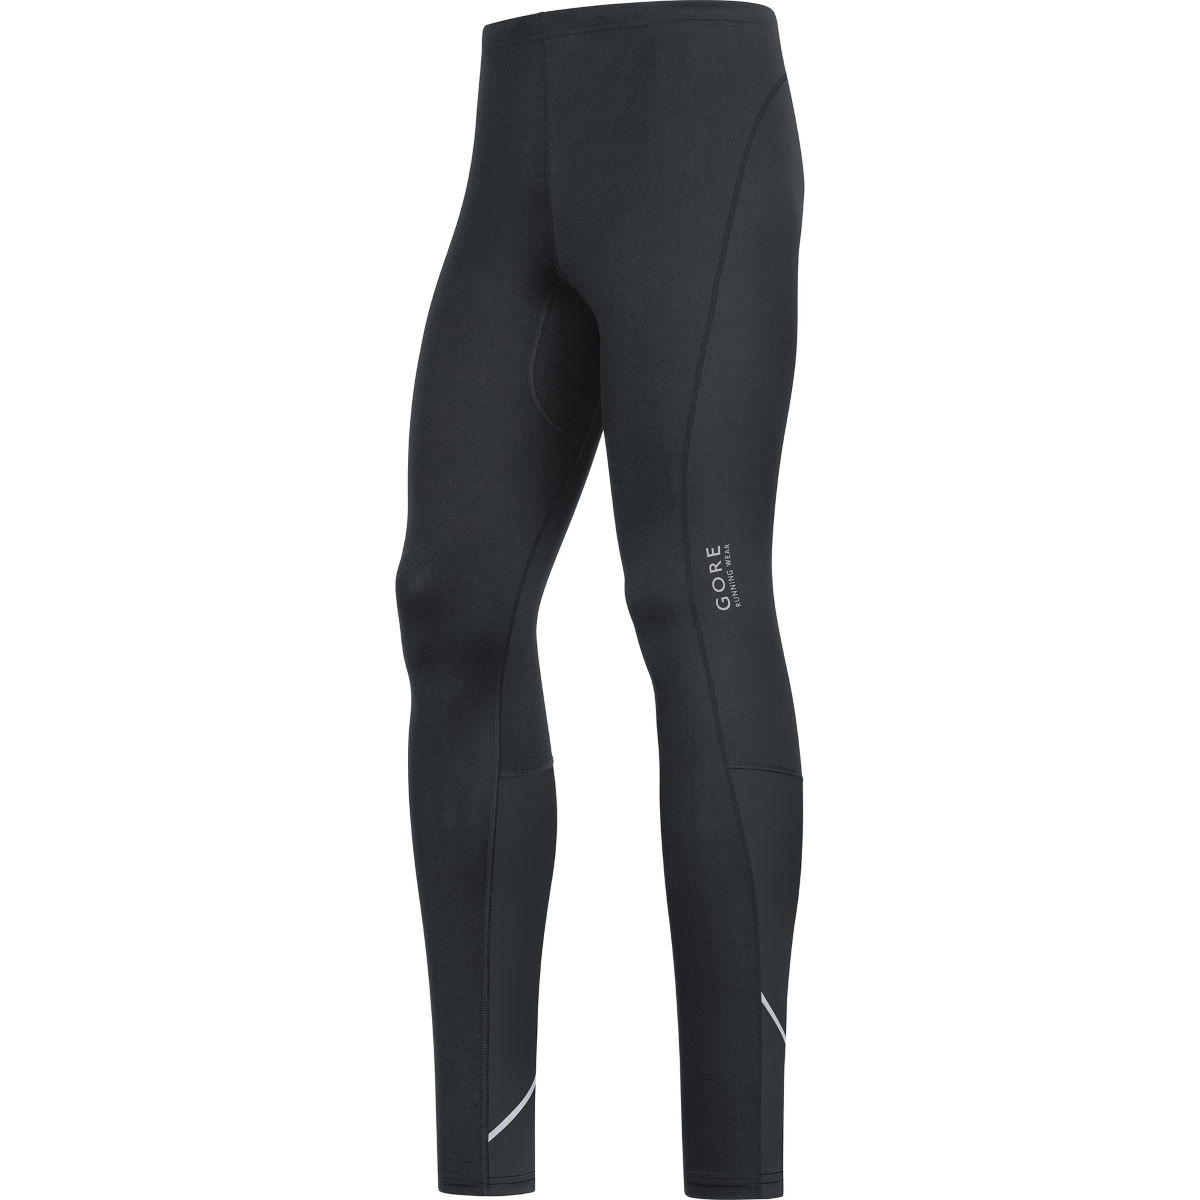 Collant Gore Running Wear Essential - XXL black Collants de running